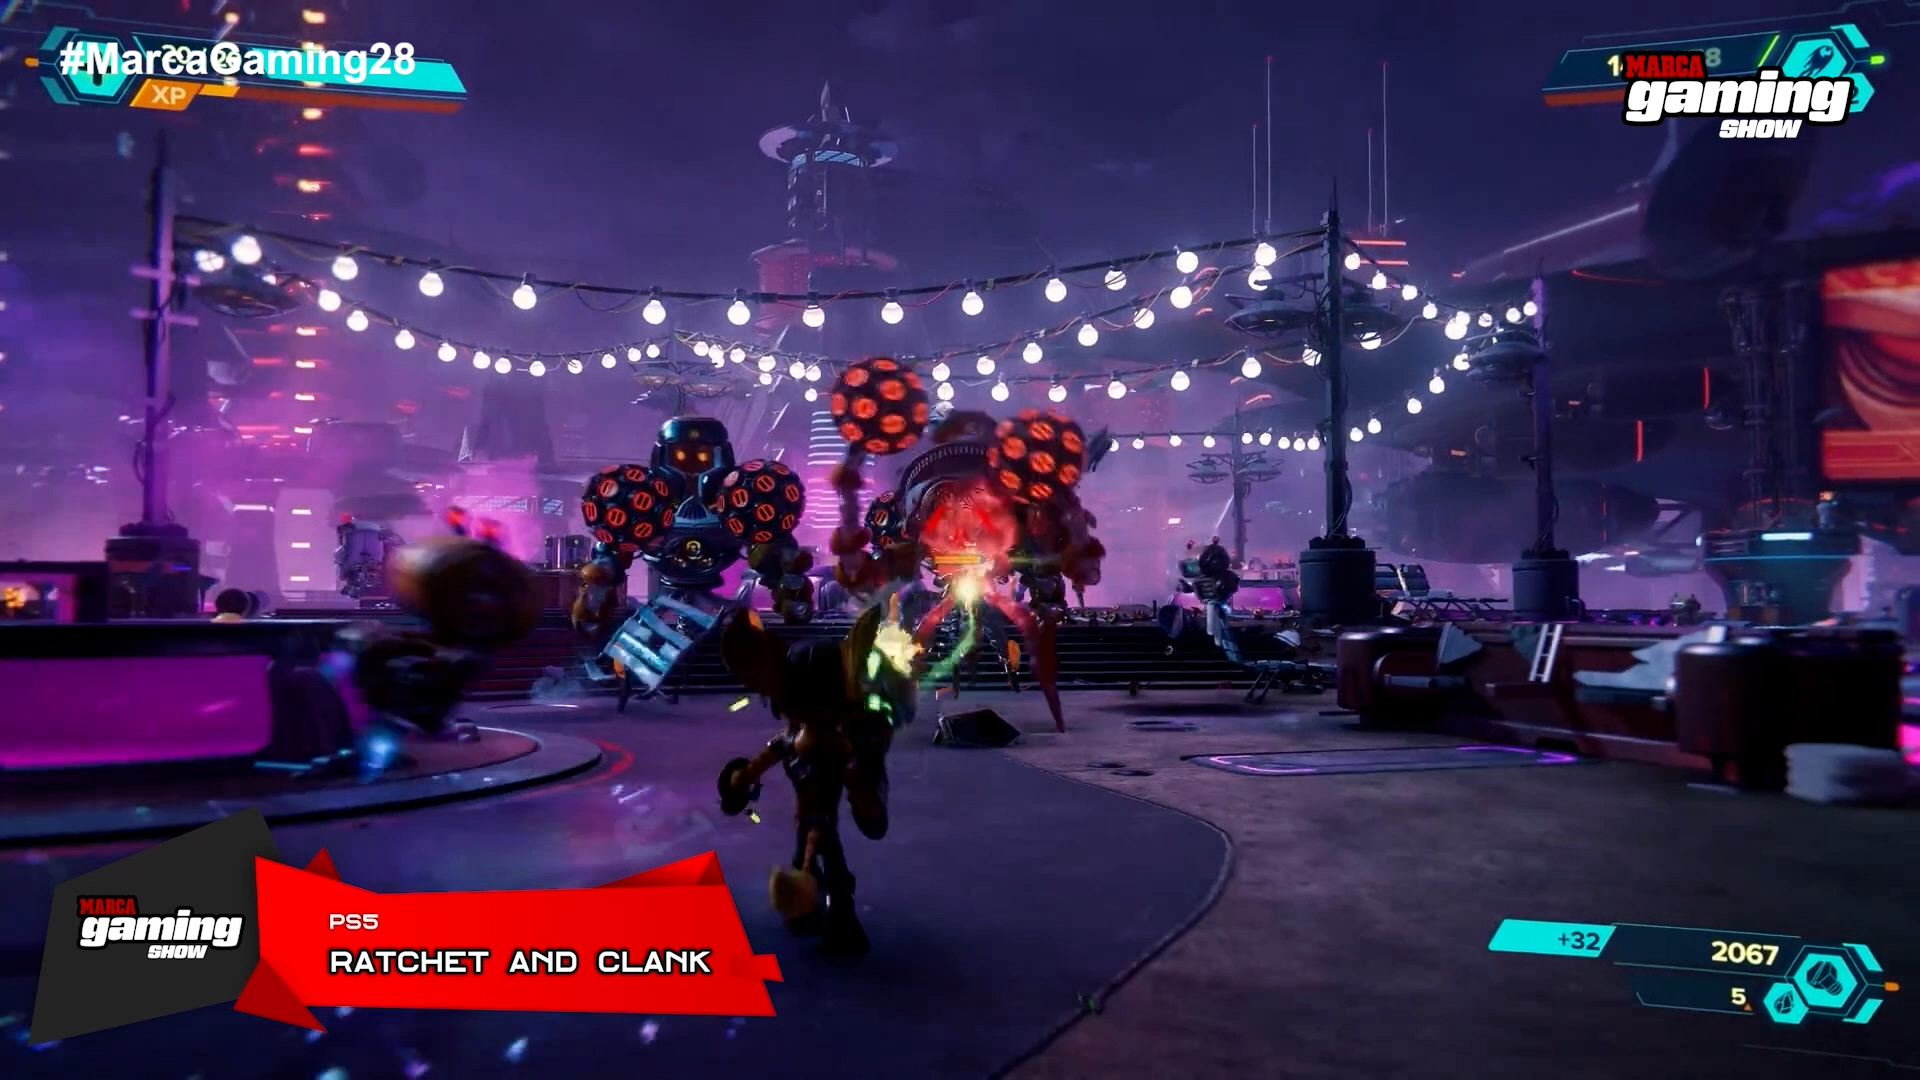 Ratchet and Clank (PS5)